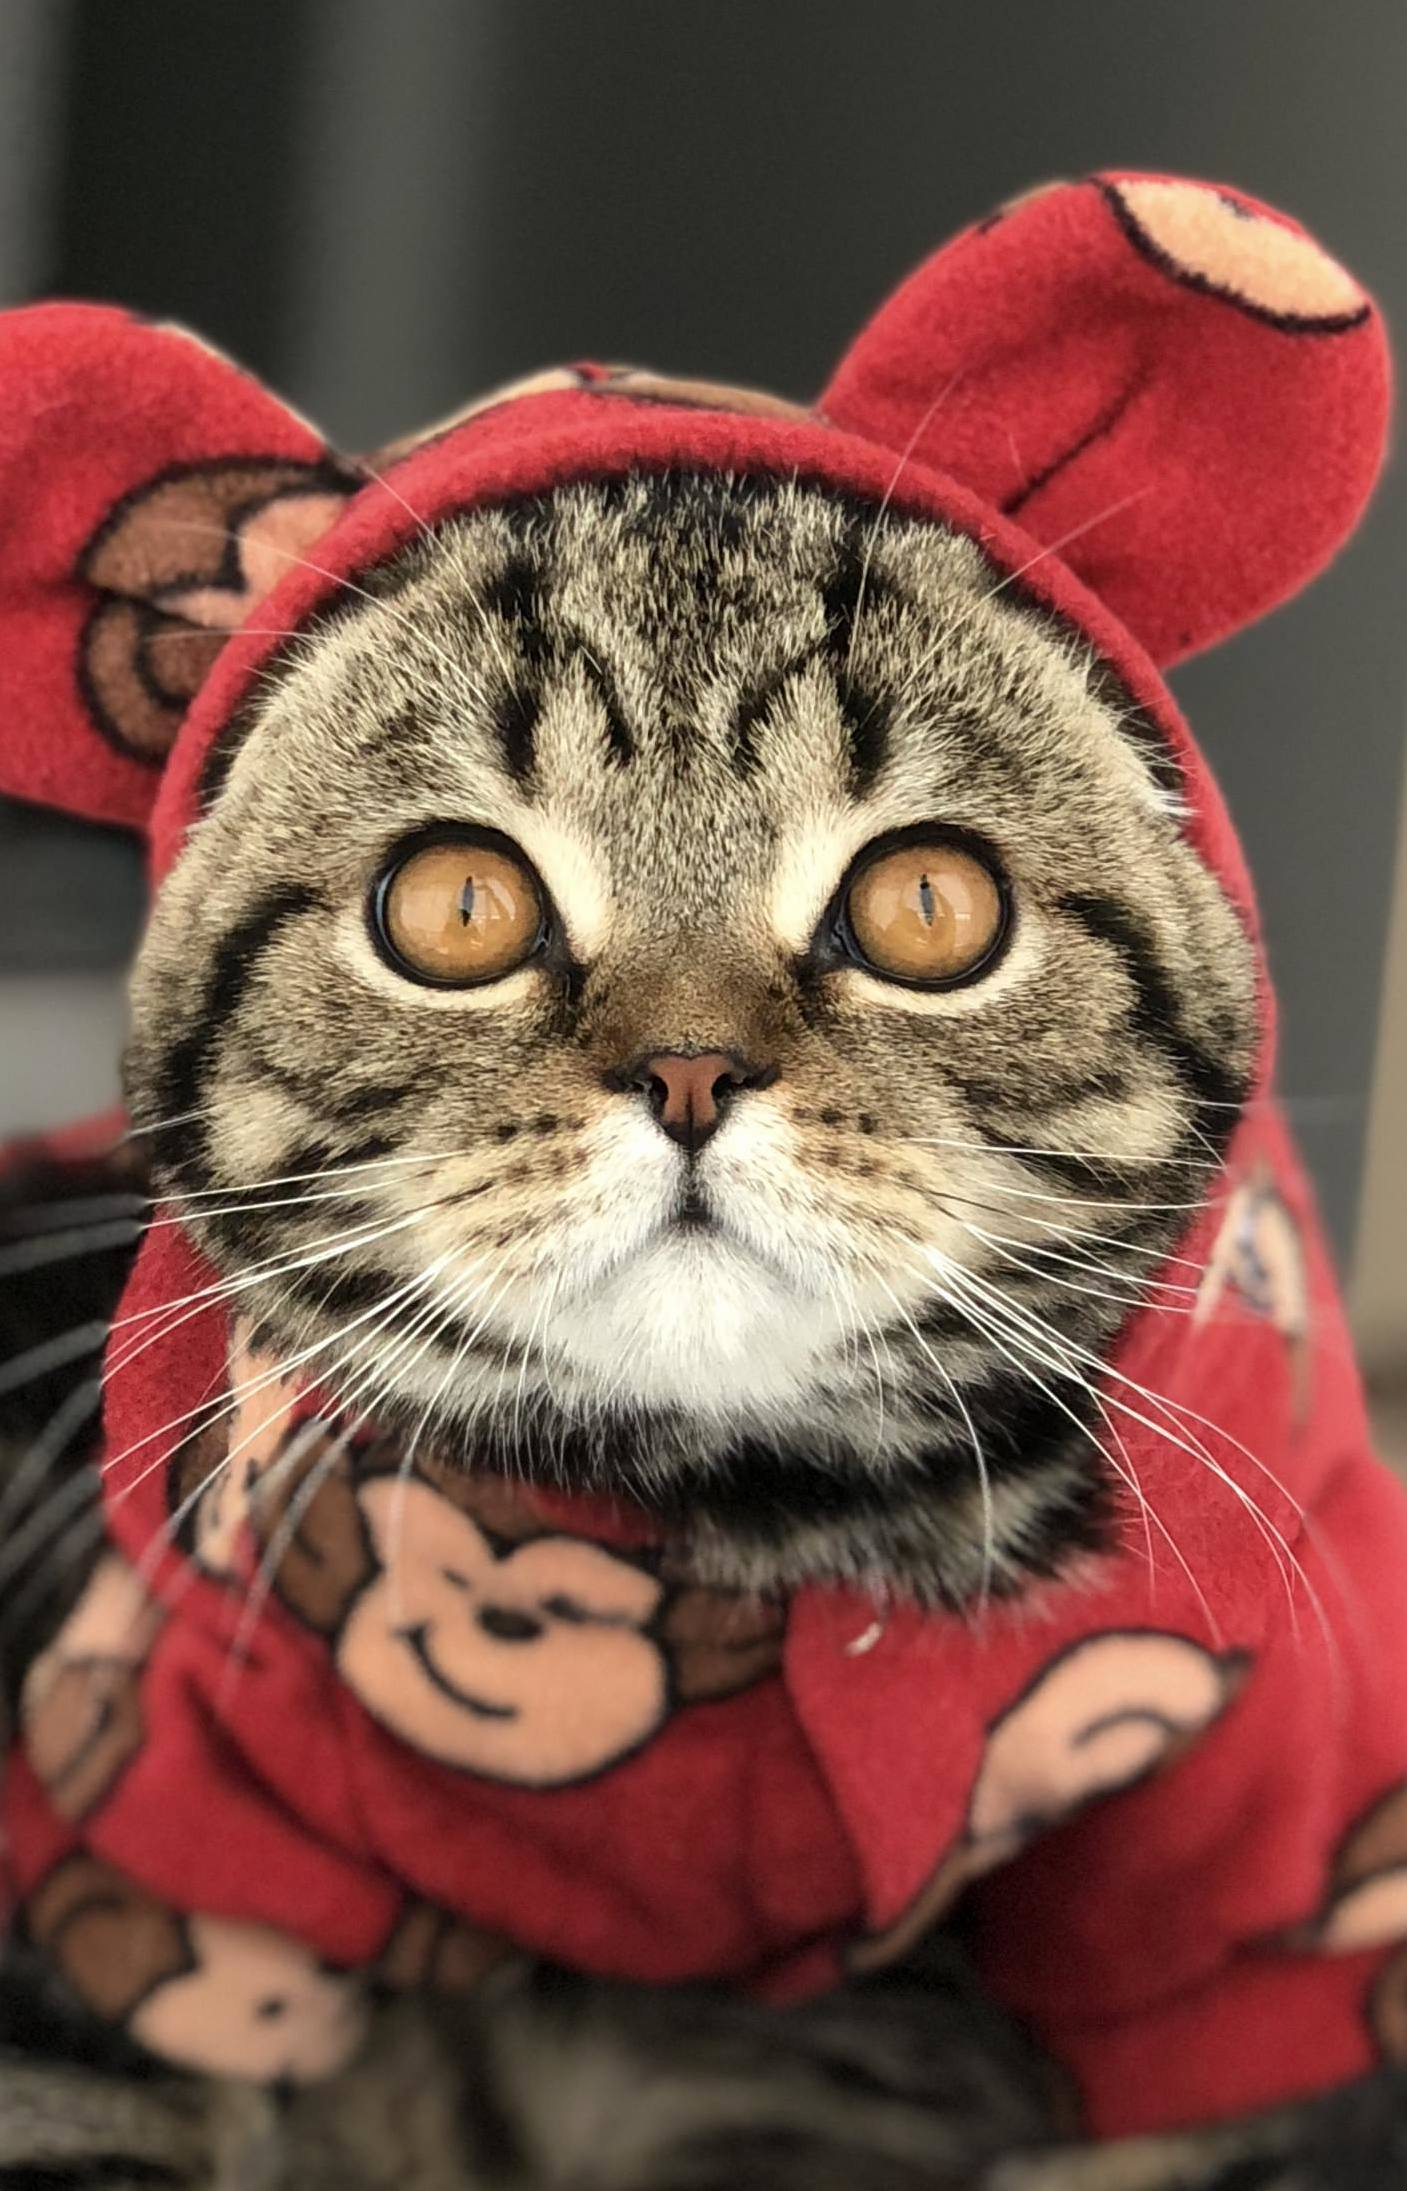 My guy walle. hes a scottish fold, so ears come seperatly…